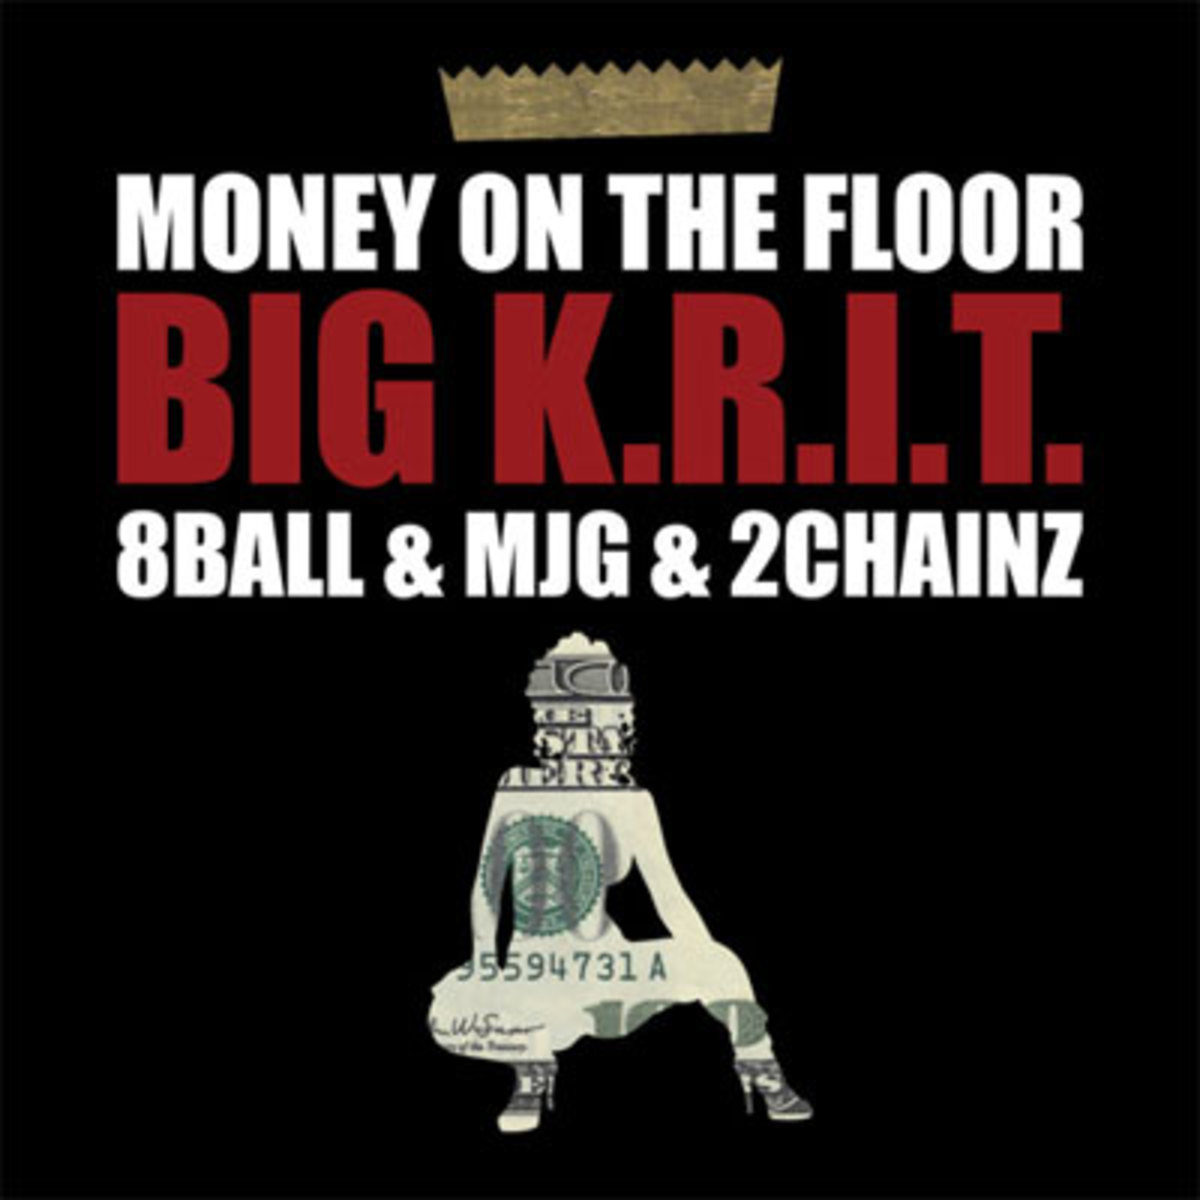 bigkrit-moneyonthefloor.jpg